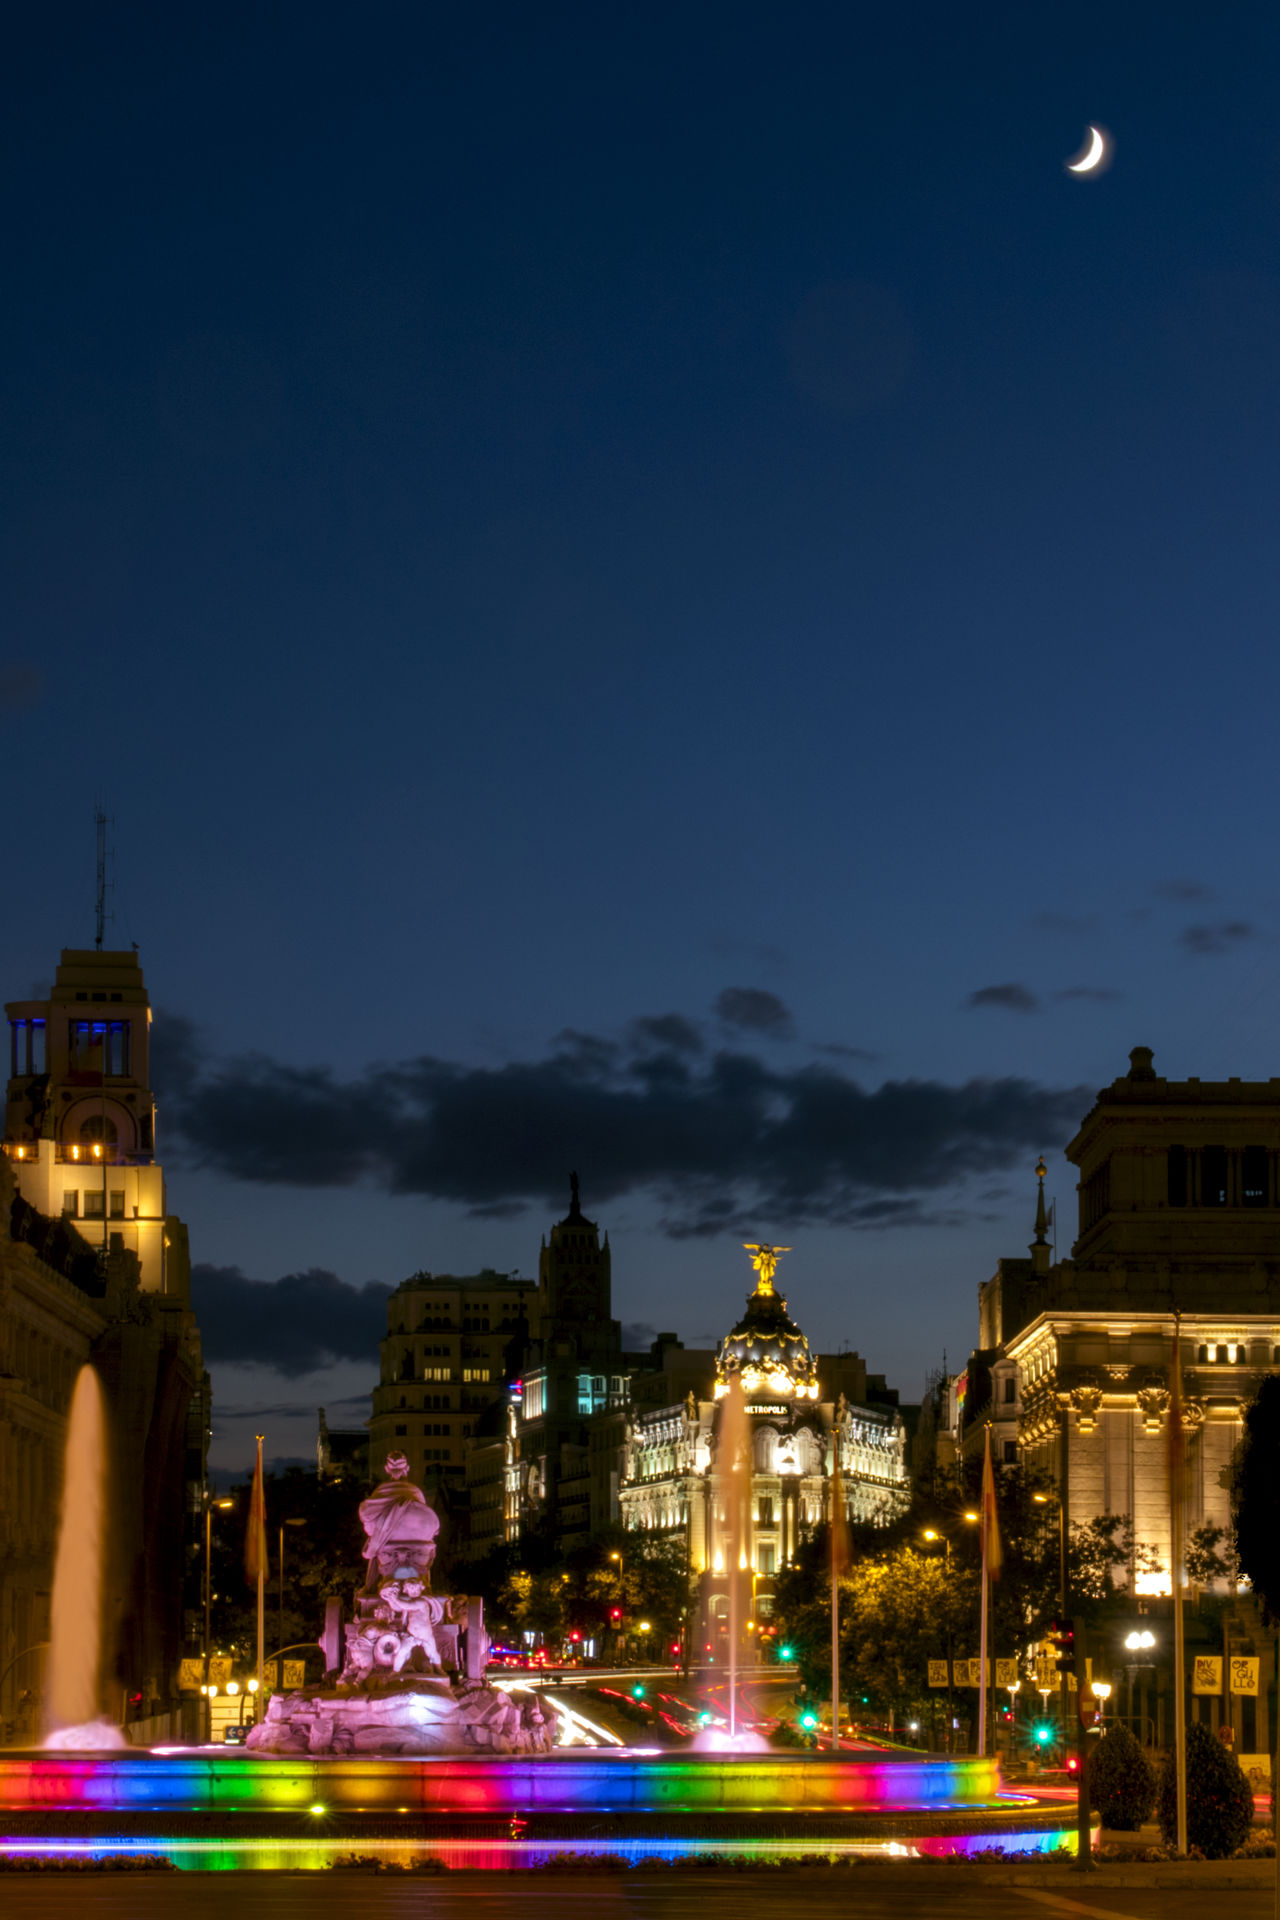 Architecture Building Exterior Built Structure Cibeles City Colorful Fountain Gay Pride Illuminated Long Exposure Madrid Metropolis Moon Night Night Lights Night Photography Outdoors Pride Pride Parade